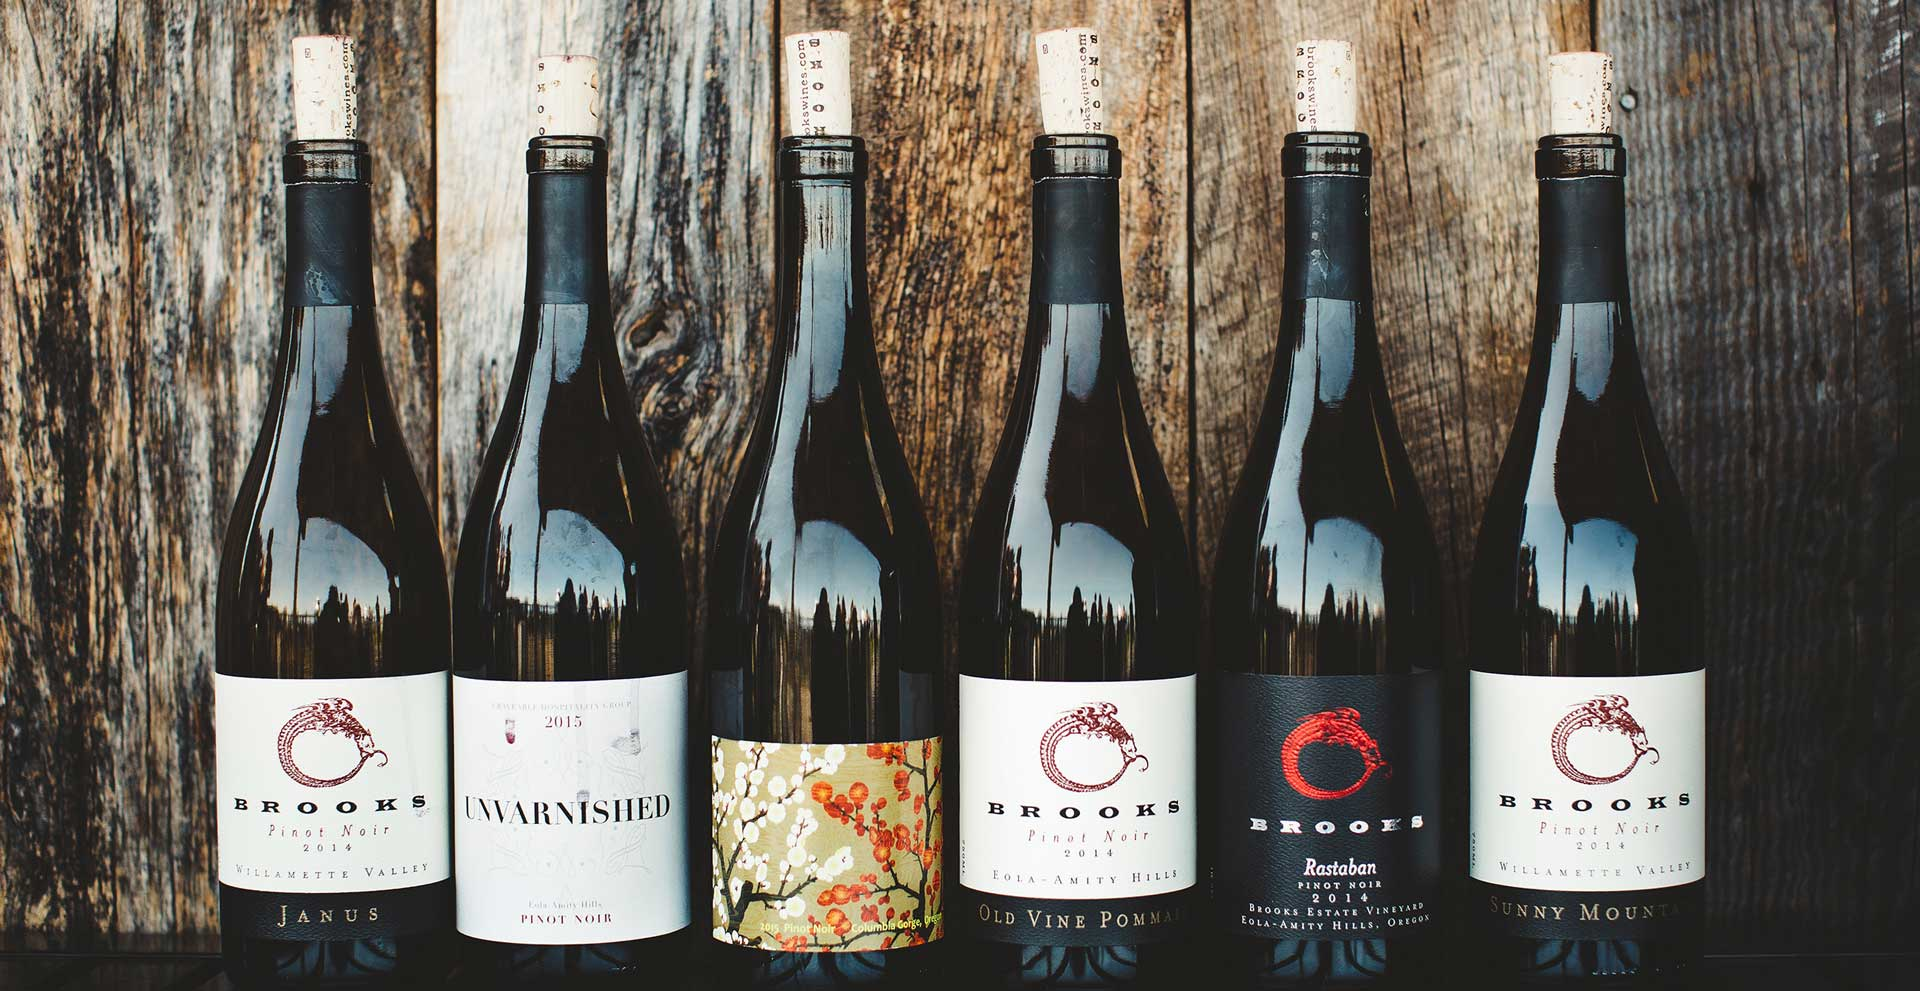 6 bottles of wine with wood background